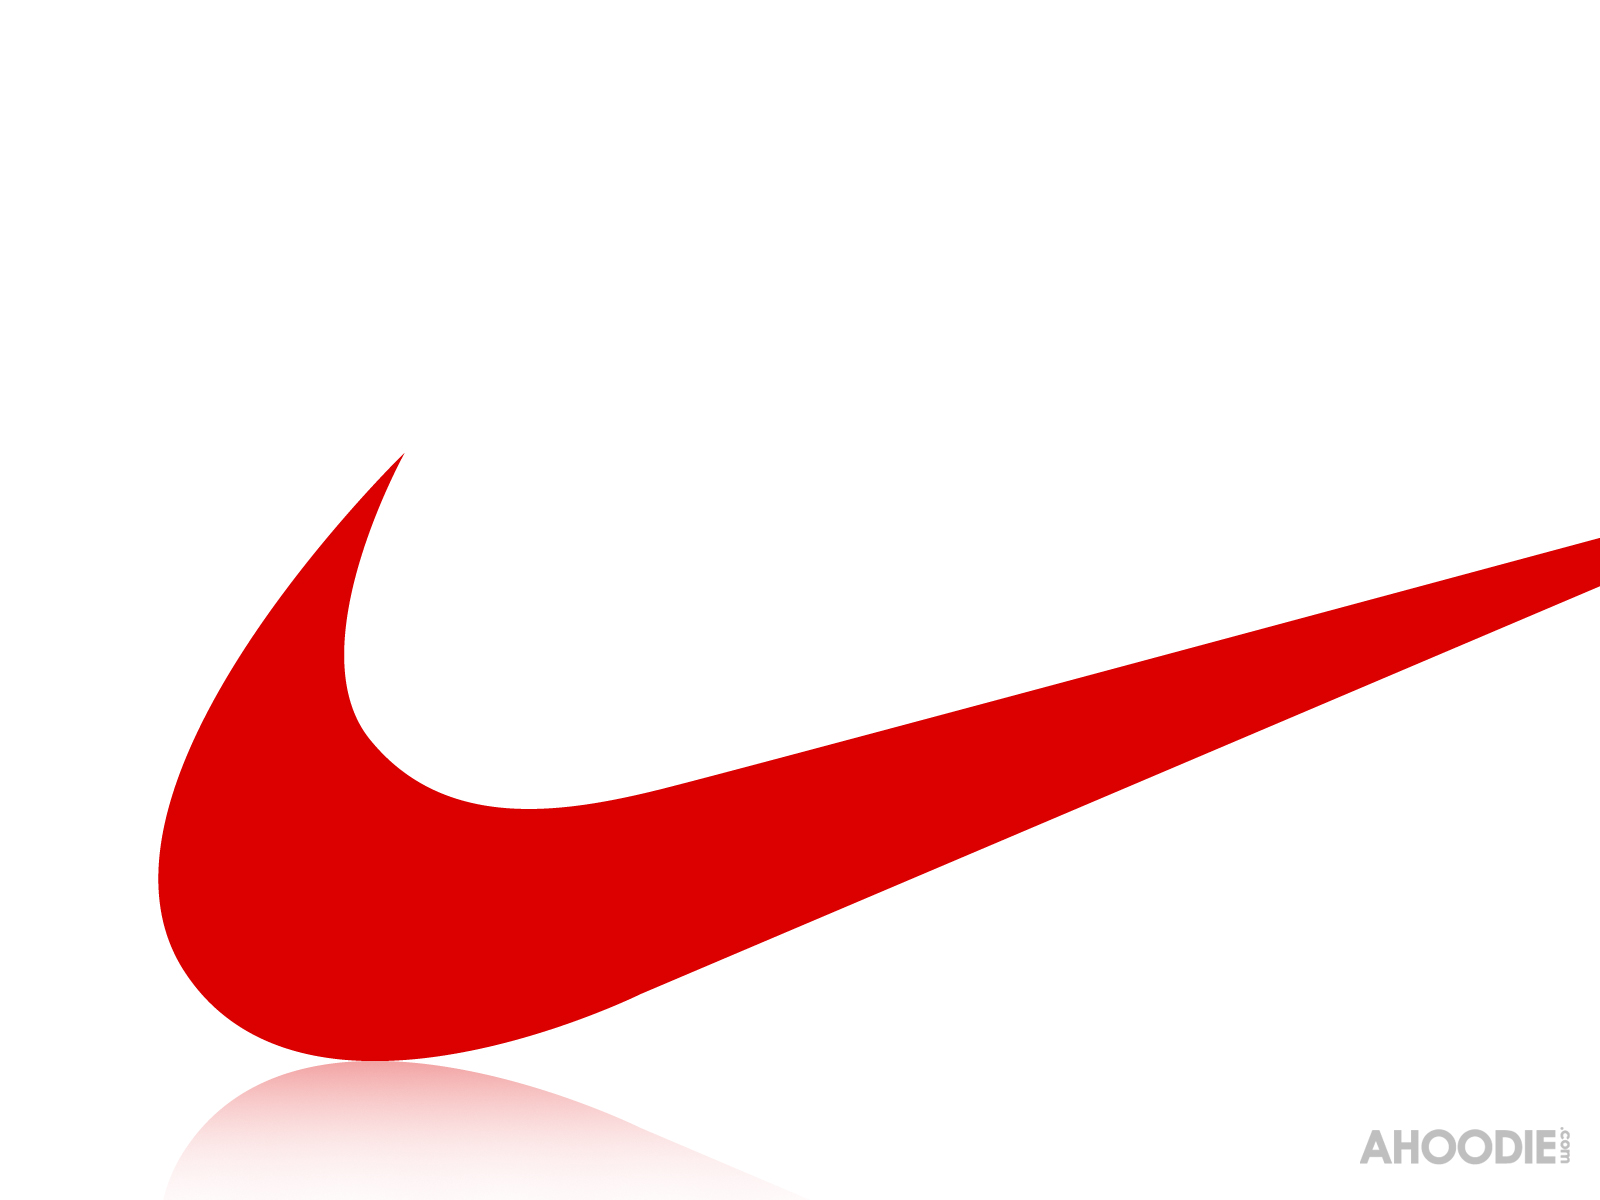 Nike logo the Swoosh can be merely described as Simple Fluid and 1600x1200